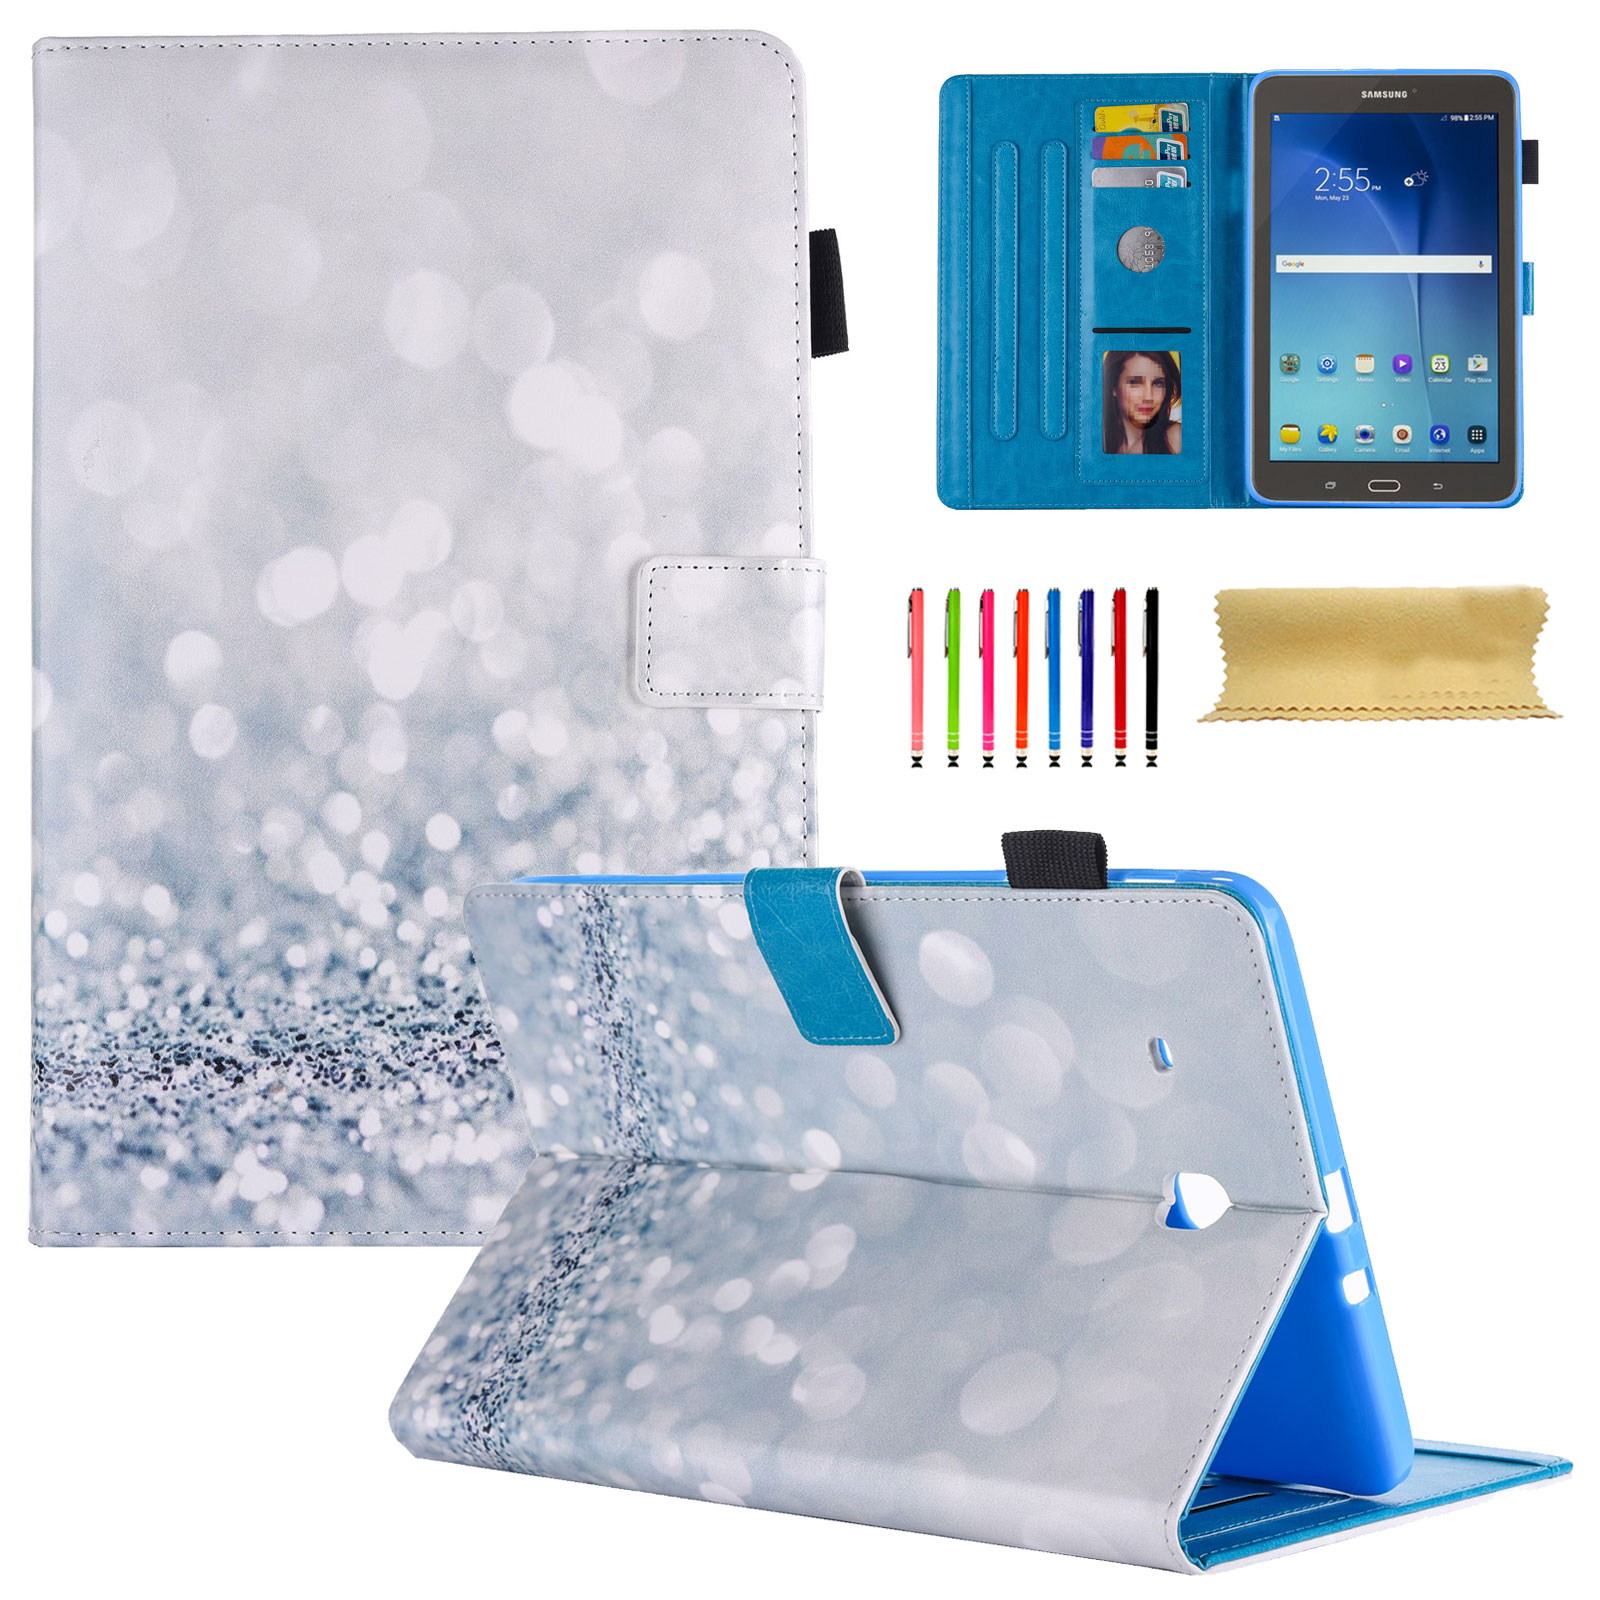 Galaxy Tab E 8.0 Case, Goodest Slim PU Leather Wallet Folio Stand Cases and Covers with Auto Wake/ Sleep Samsung Galaxy Tab E 32GB SM-T378/Tab E 8.0-Inch SM-T375/SM-T377 Tablet, Silver Sand